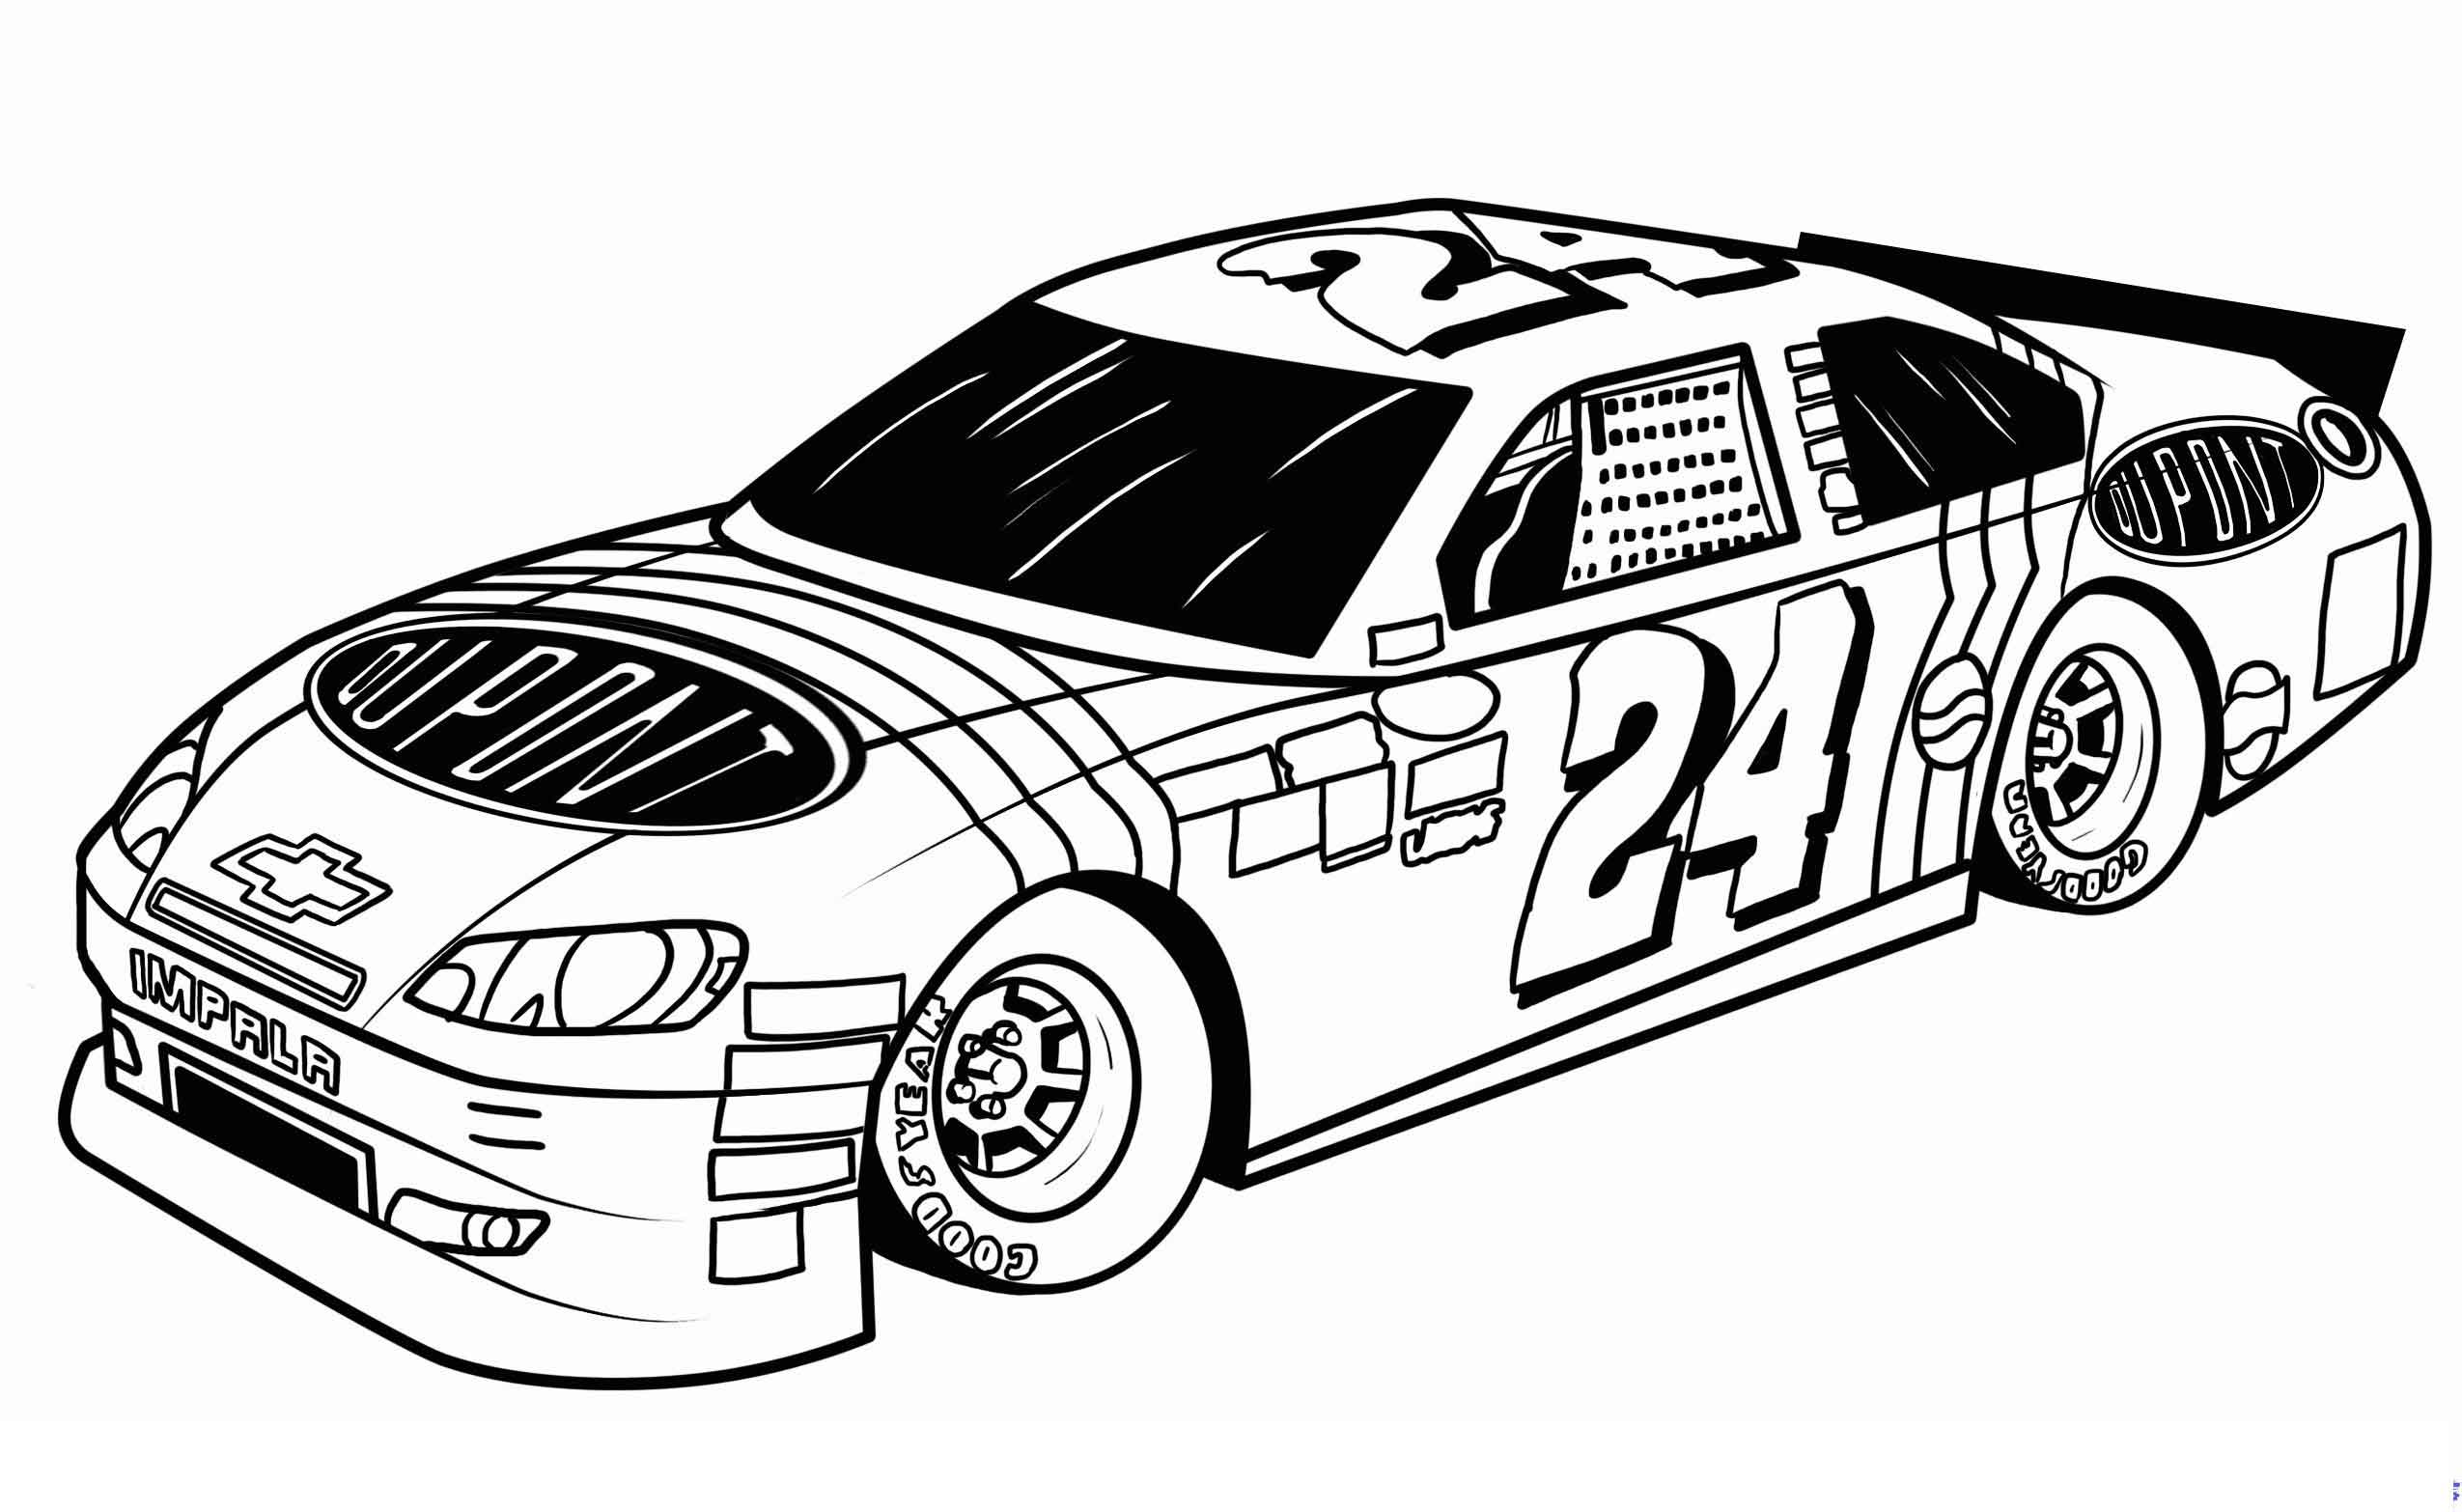 coloring pages race cars race cars coloring pages free large images race car cars race pages coloring